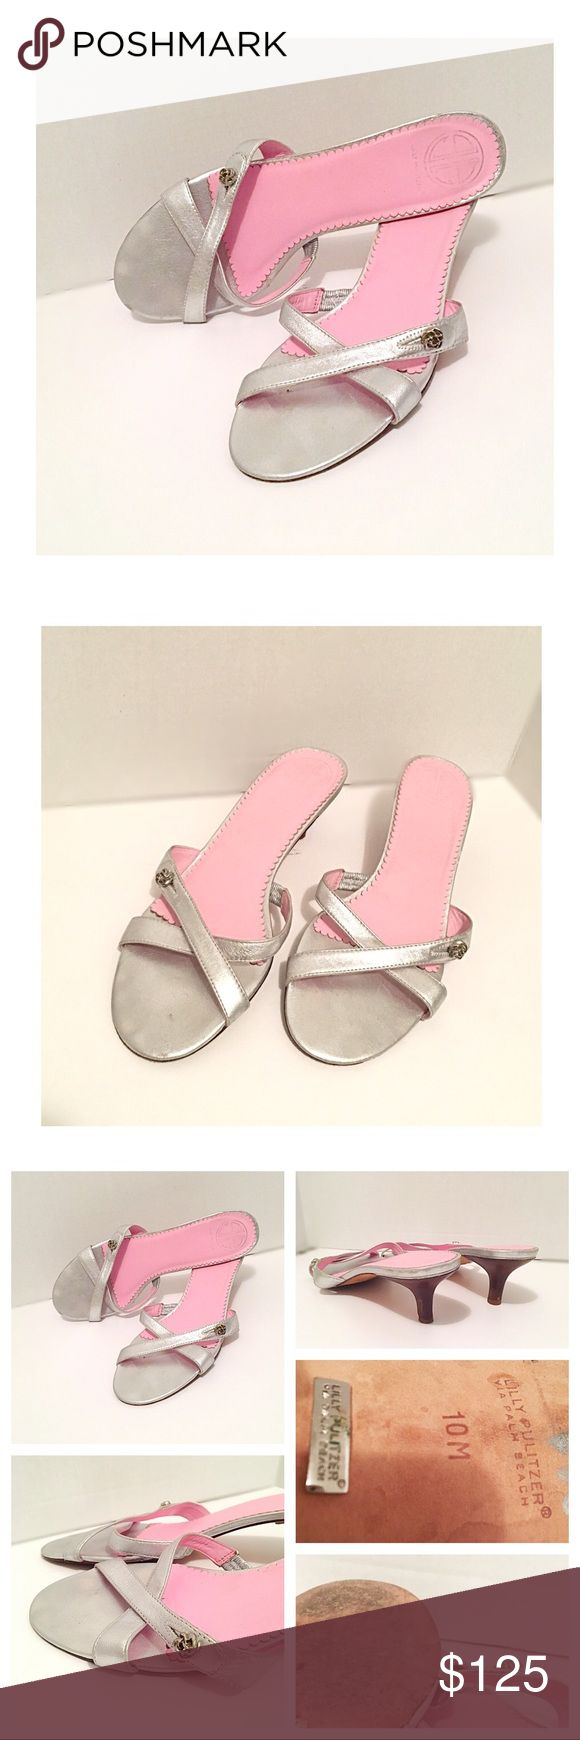 "Lilly Pulitzer Fashion Chic Silver & Pink Sandals Beautiful Feminine Silver Strappy Sandals, with stylish pewter rose flower embellishments / button. Perfect for casual office days, cruises, weddings, honeymoon, girls day shopping, running errands, graduation / prom, college spring summer days, or any day! •  metallic crossed front leather straps; and soles, pretty girly bright pink insoles, 2.375"" stacked wooden kitten heels, gently worn & show signs of wear on the bottom! • smoke & cat…"